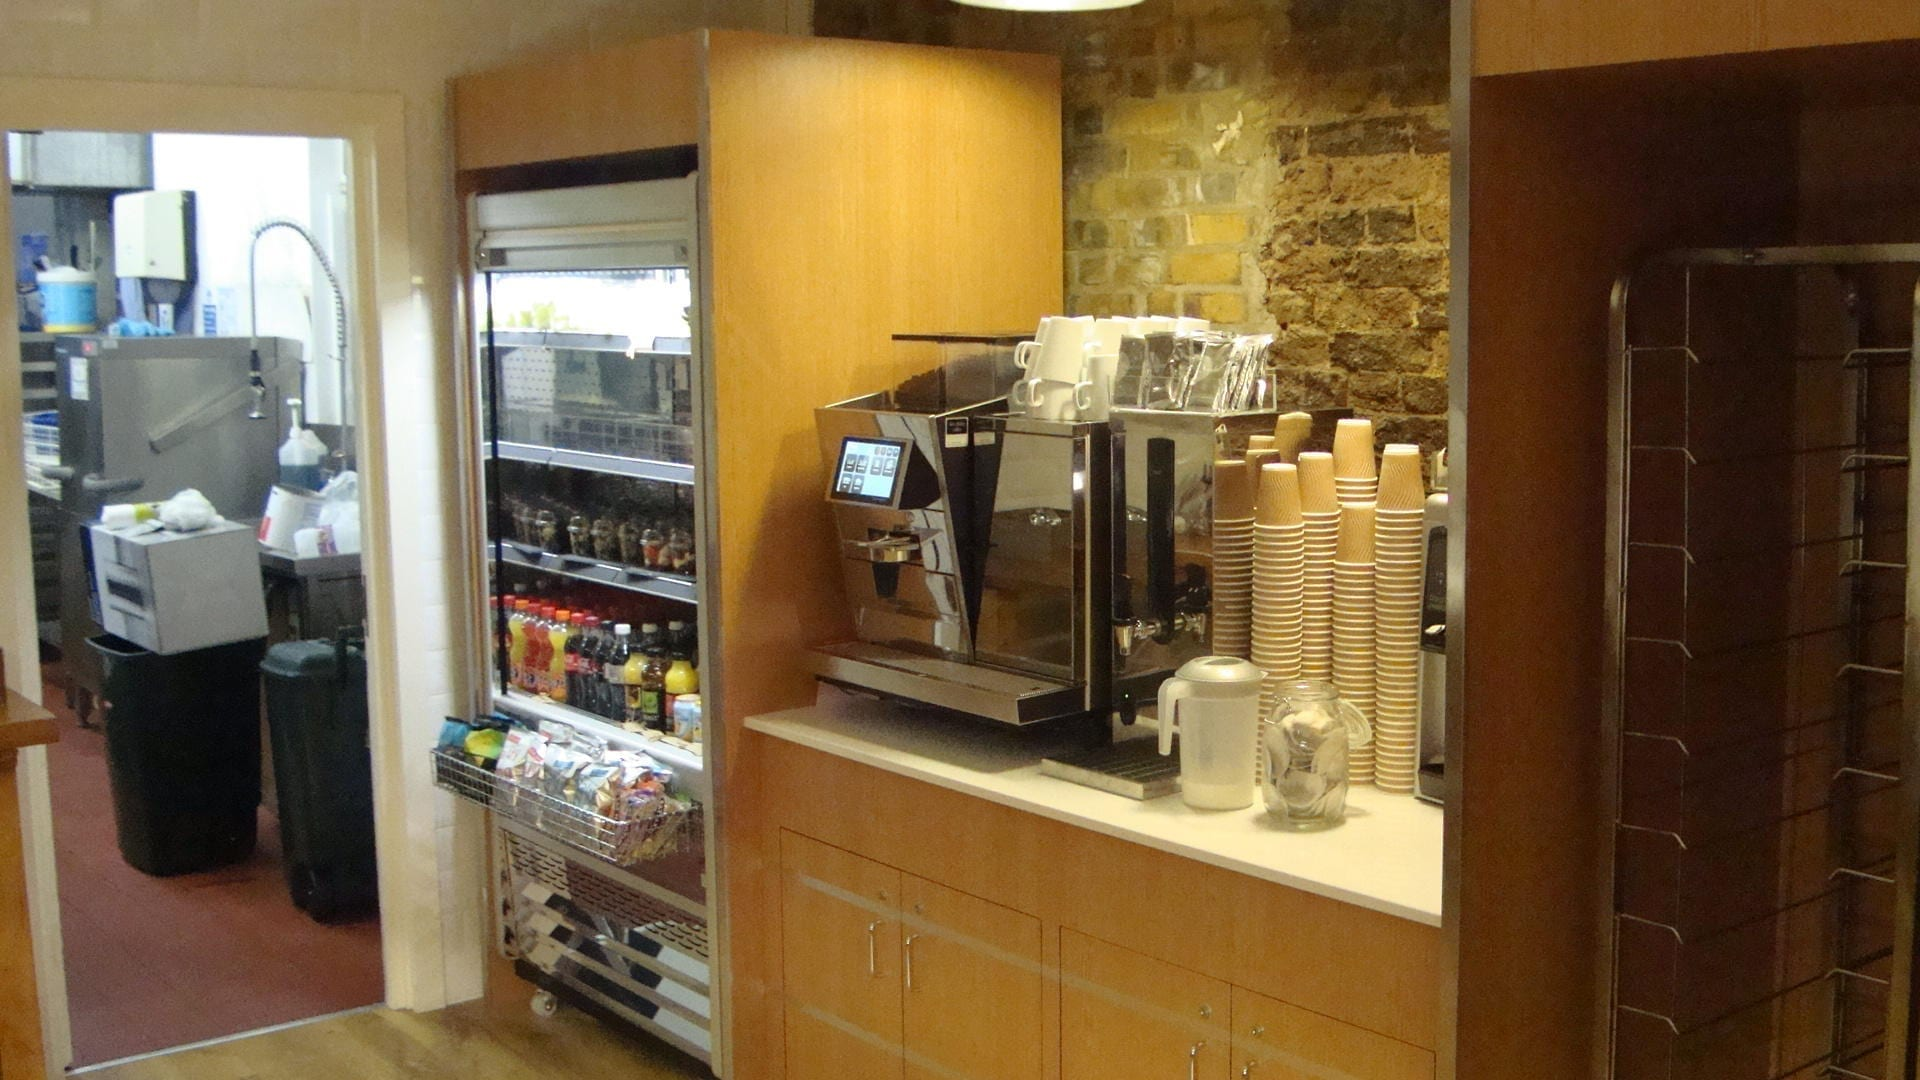 Fullers_Chiswick_Servery_Front_of_house_Servery_Food_Display_spacecatering_3